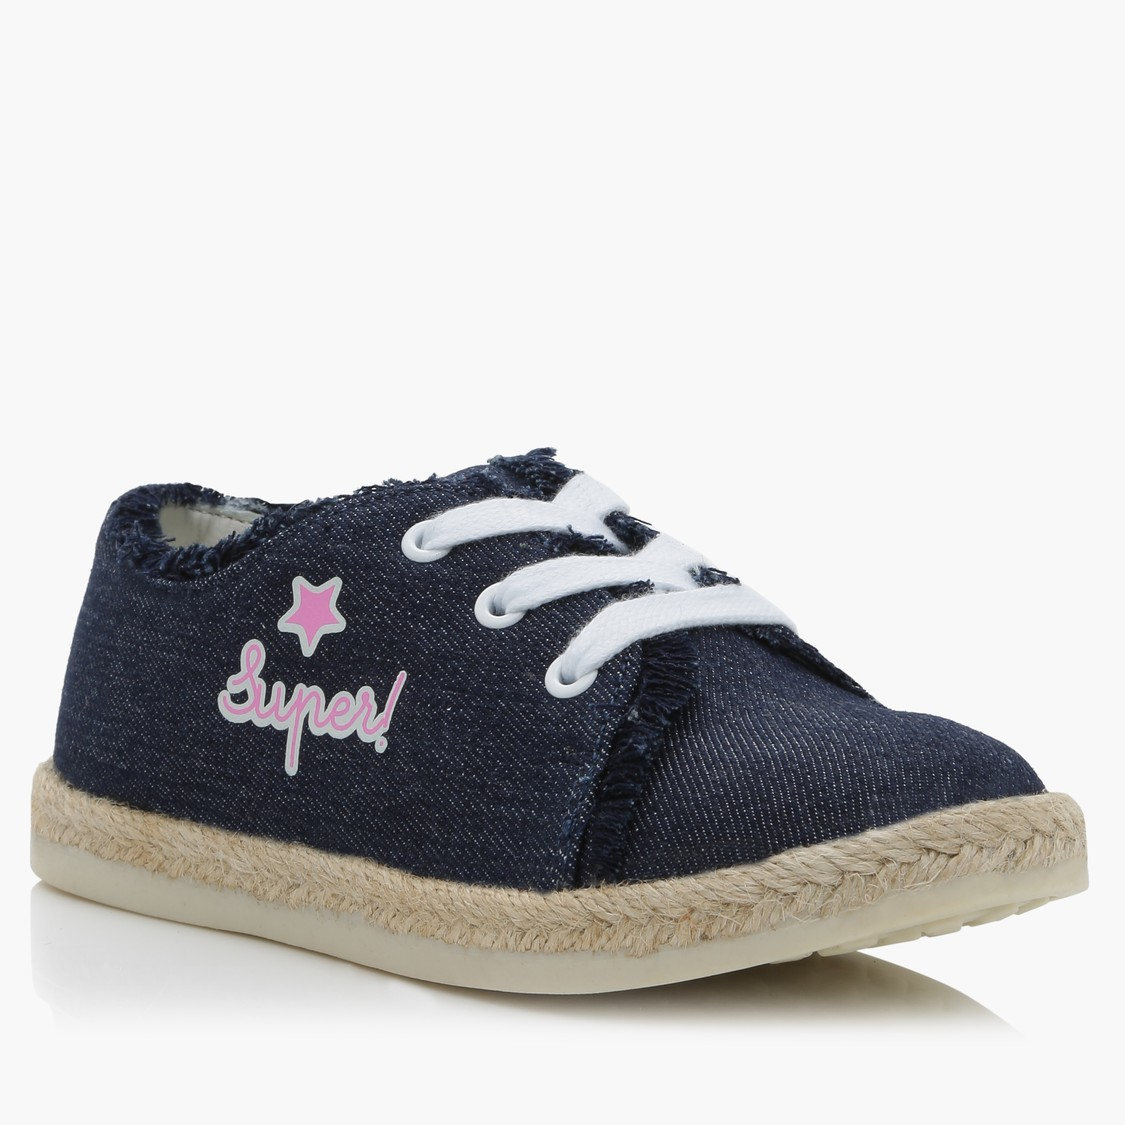 Lace-Up Shoes with Fringed Detail